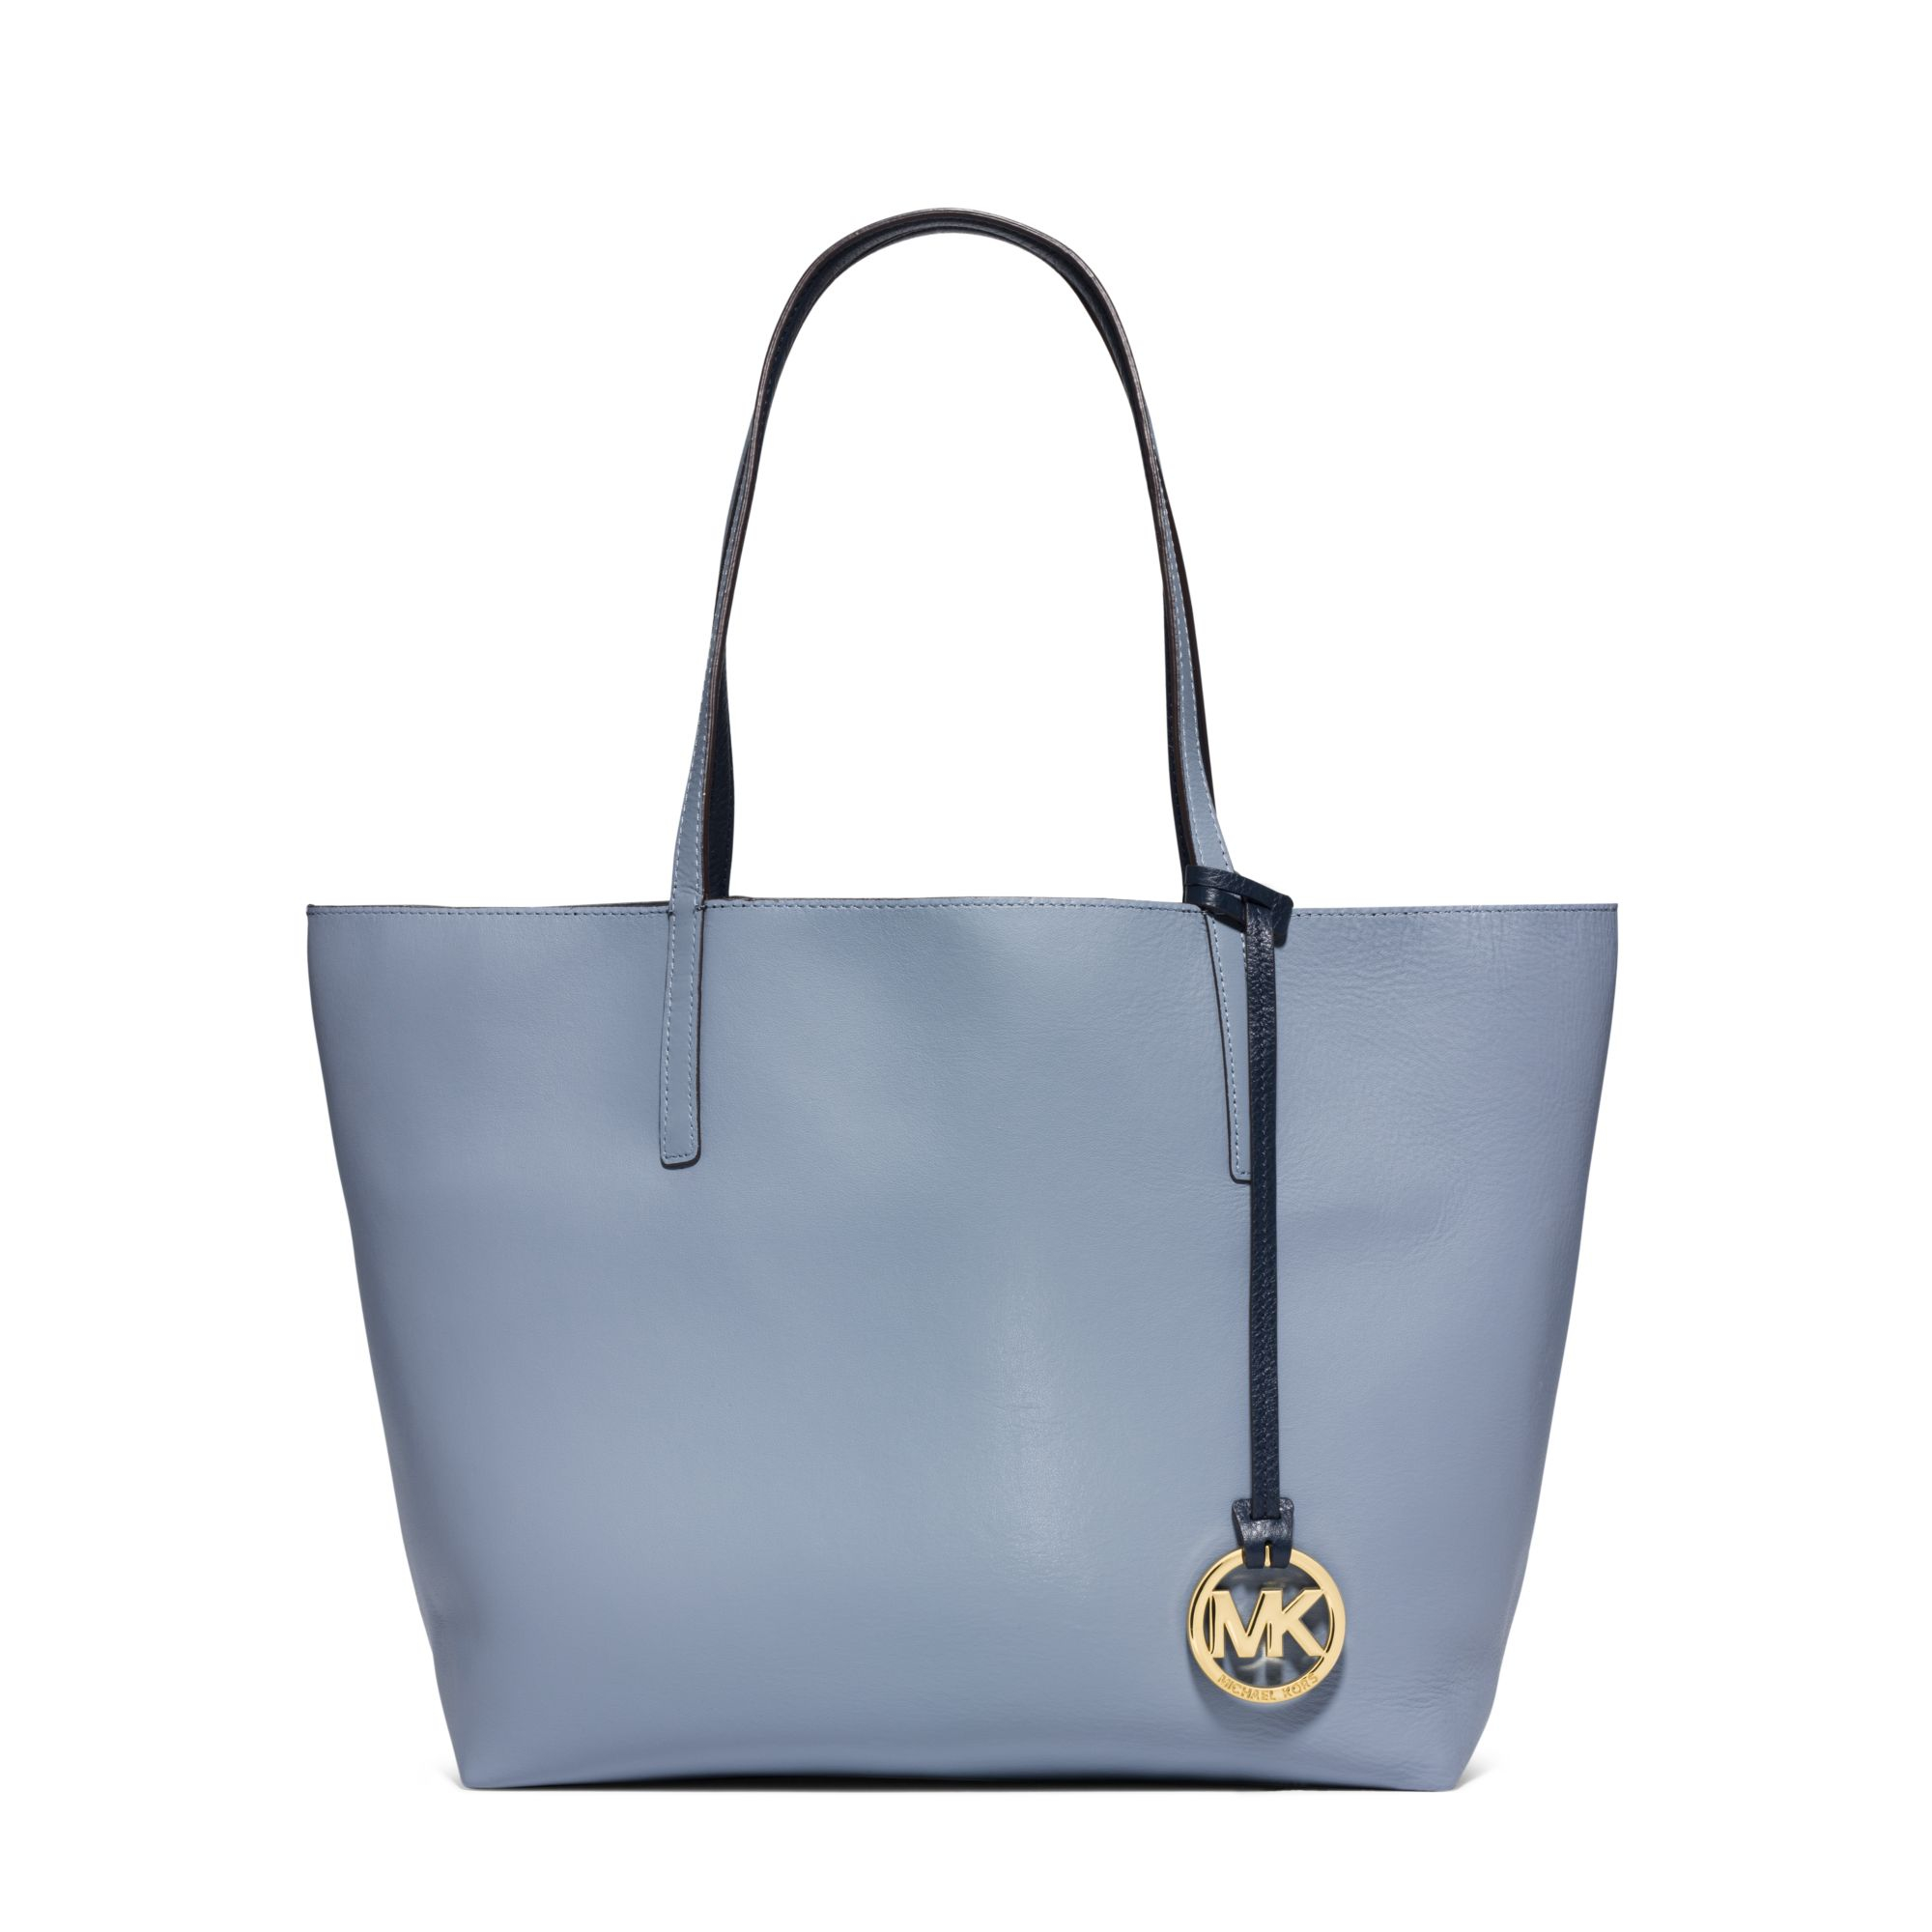 cfb7f6784a30 Michael Kors Izzy Large Reversible Leather Tote Bag in Blue - Lyst